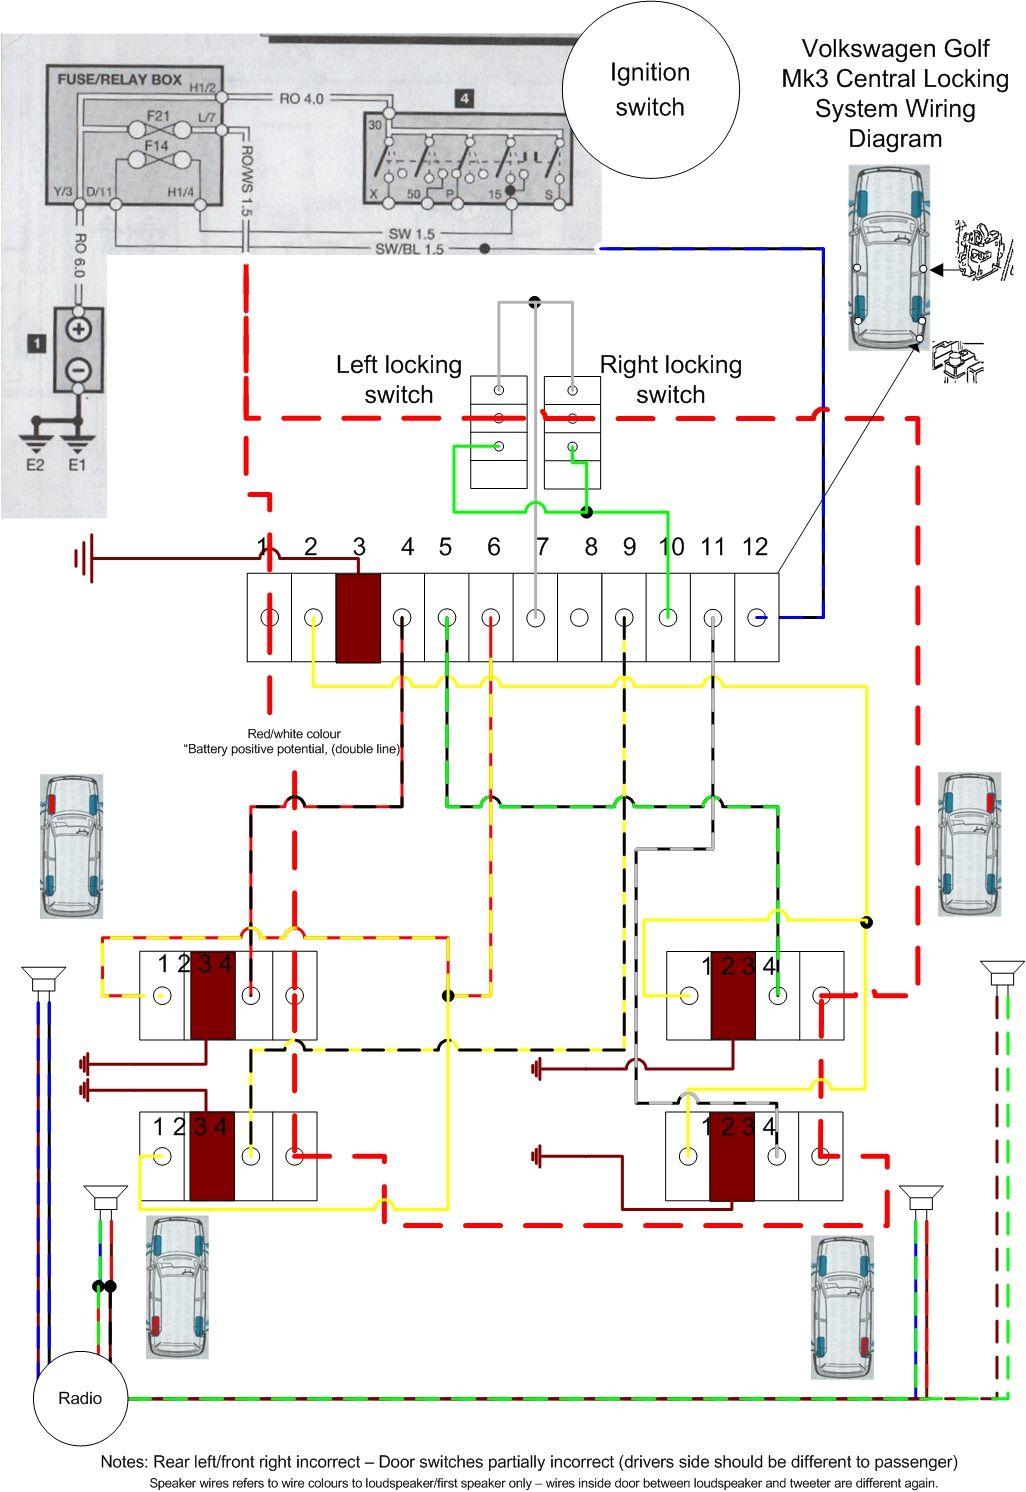 Vw Ignition Switch Wiring Diagram ... | accessory for bikes ... on